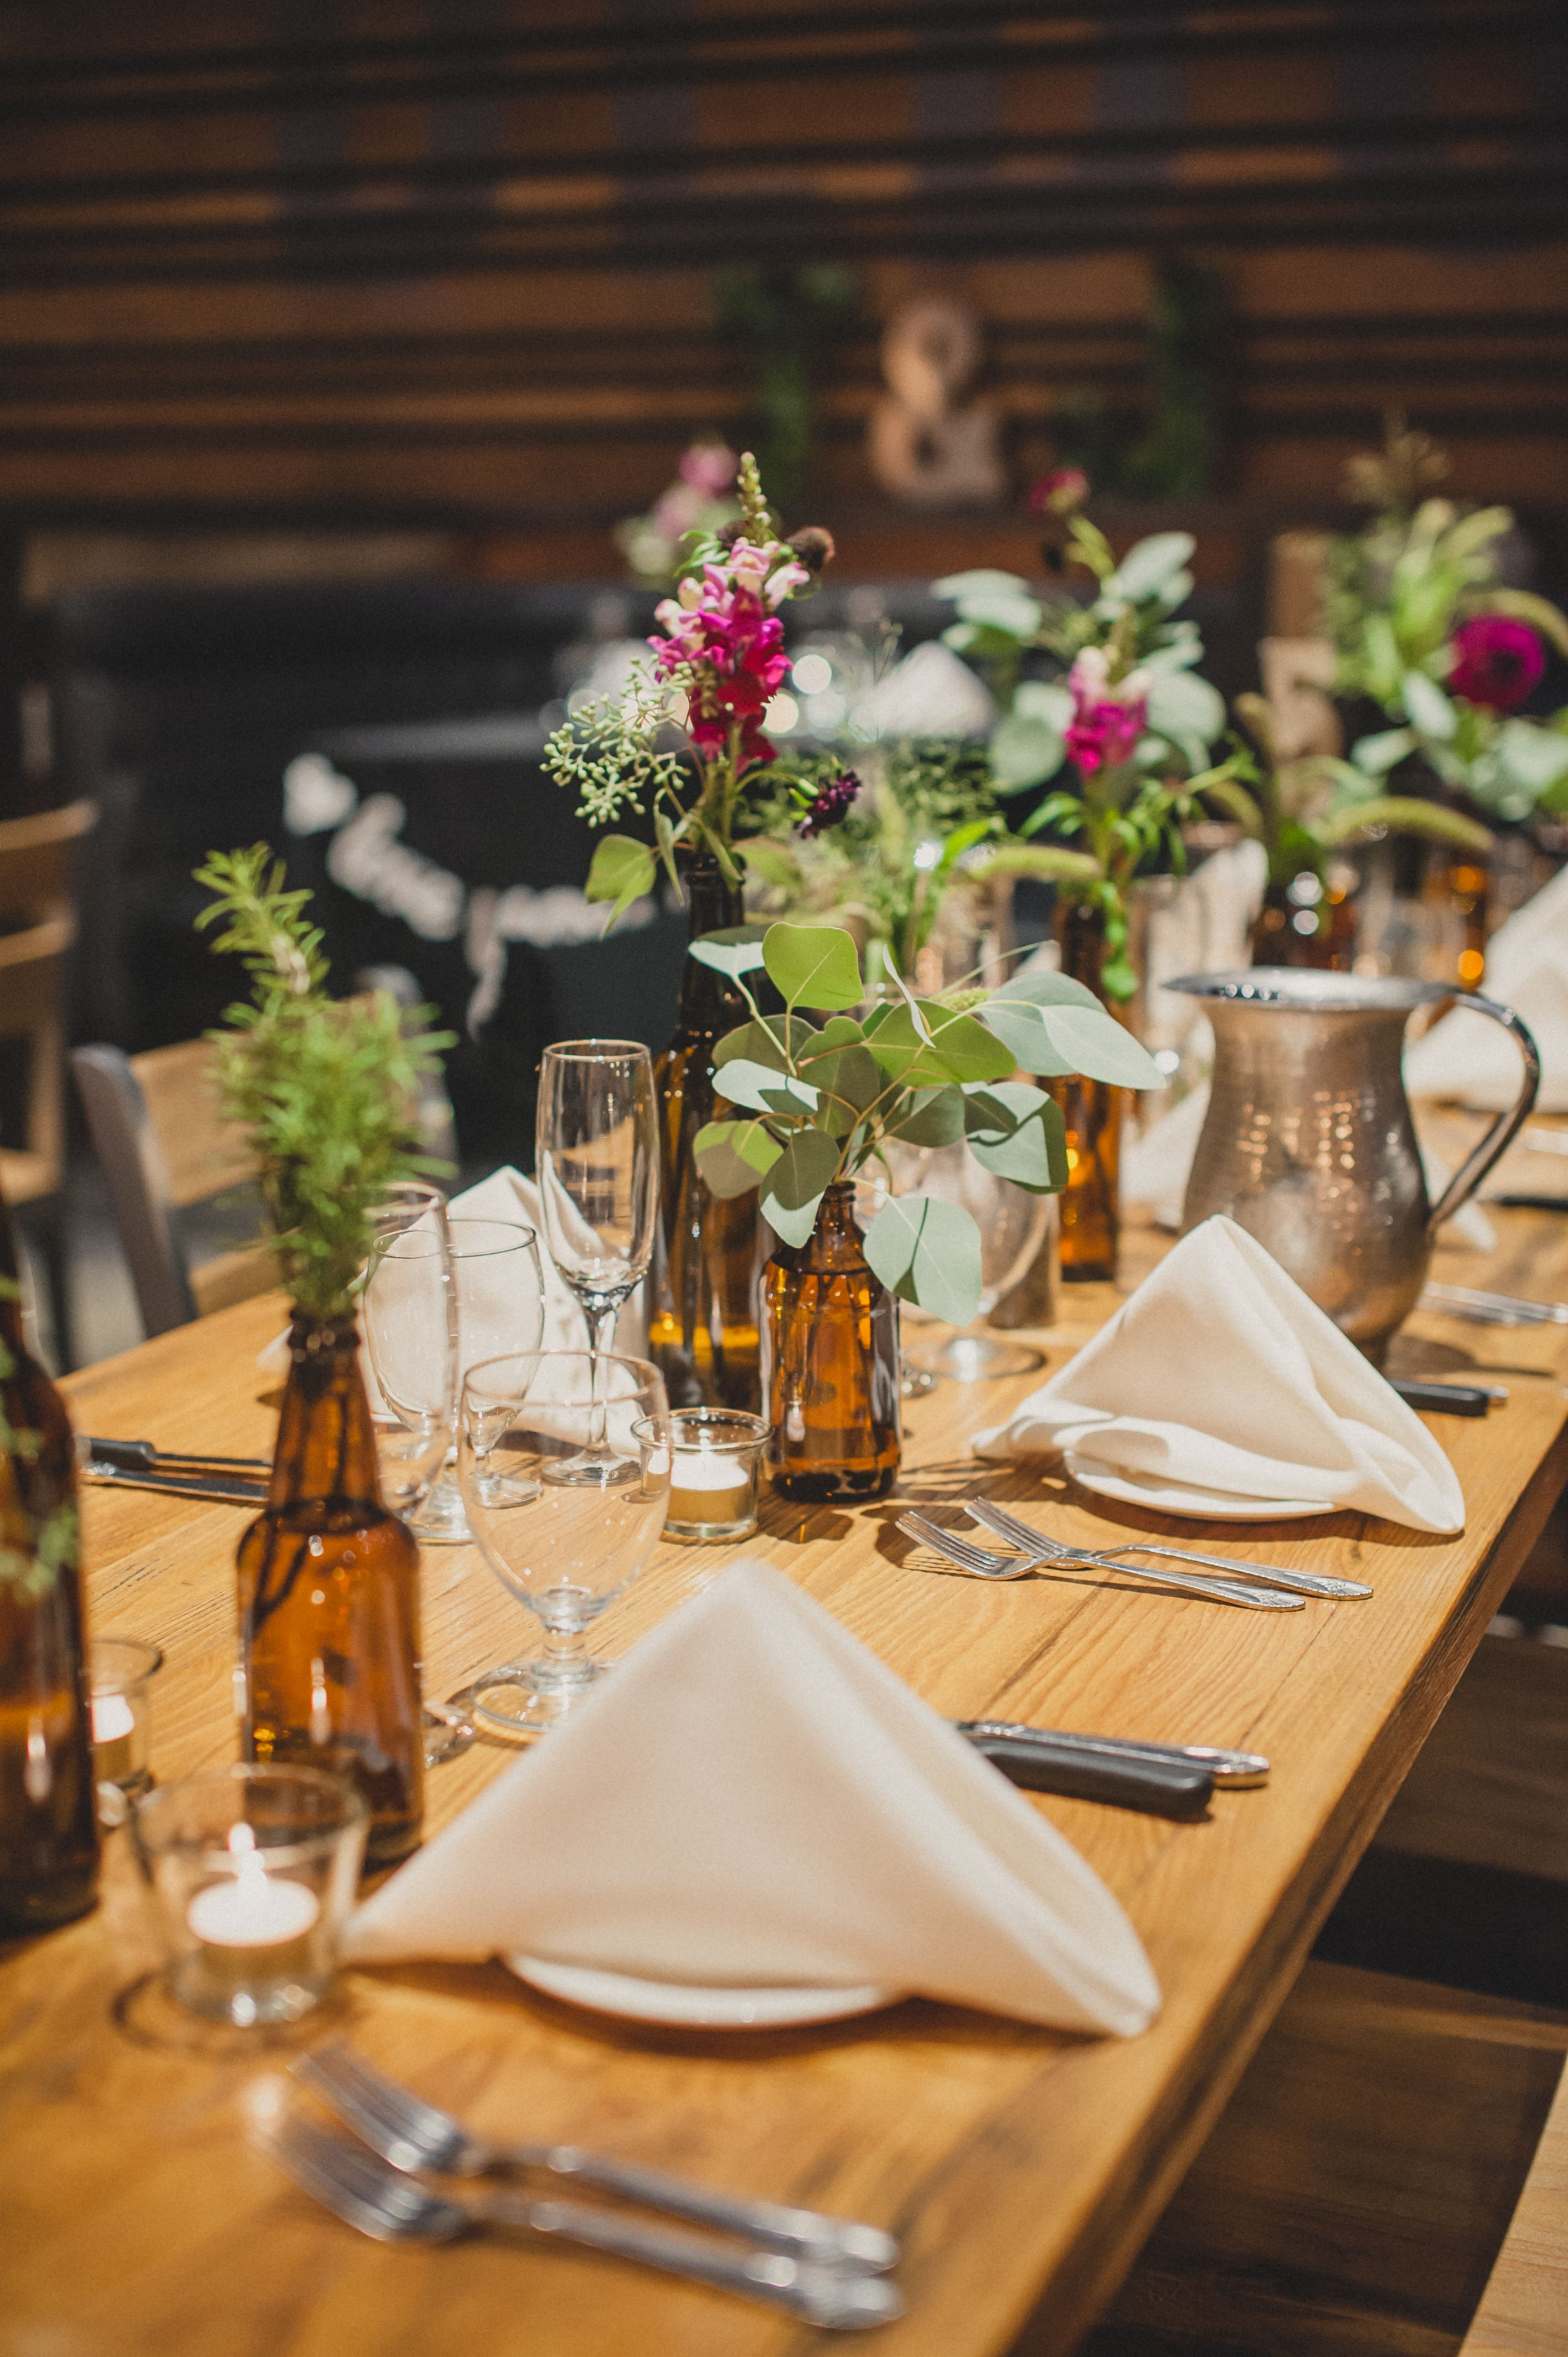 Beer Bottle Wedding Reception Centerpieces And Decor At Karl Strauss Brewery Photo By Next To